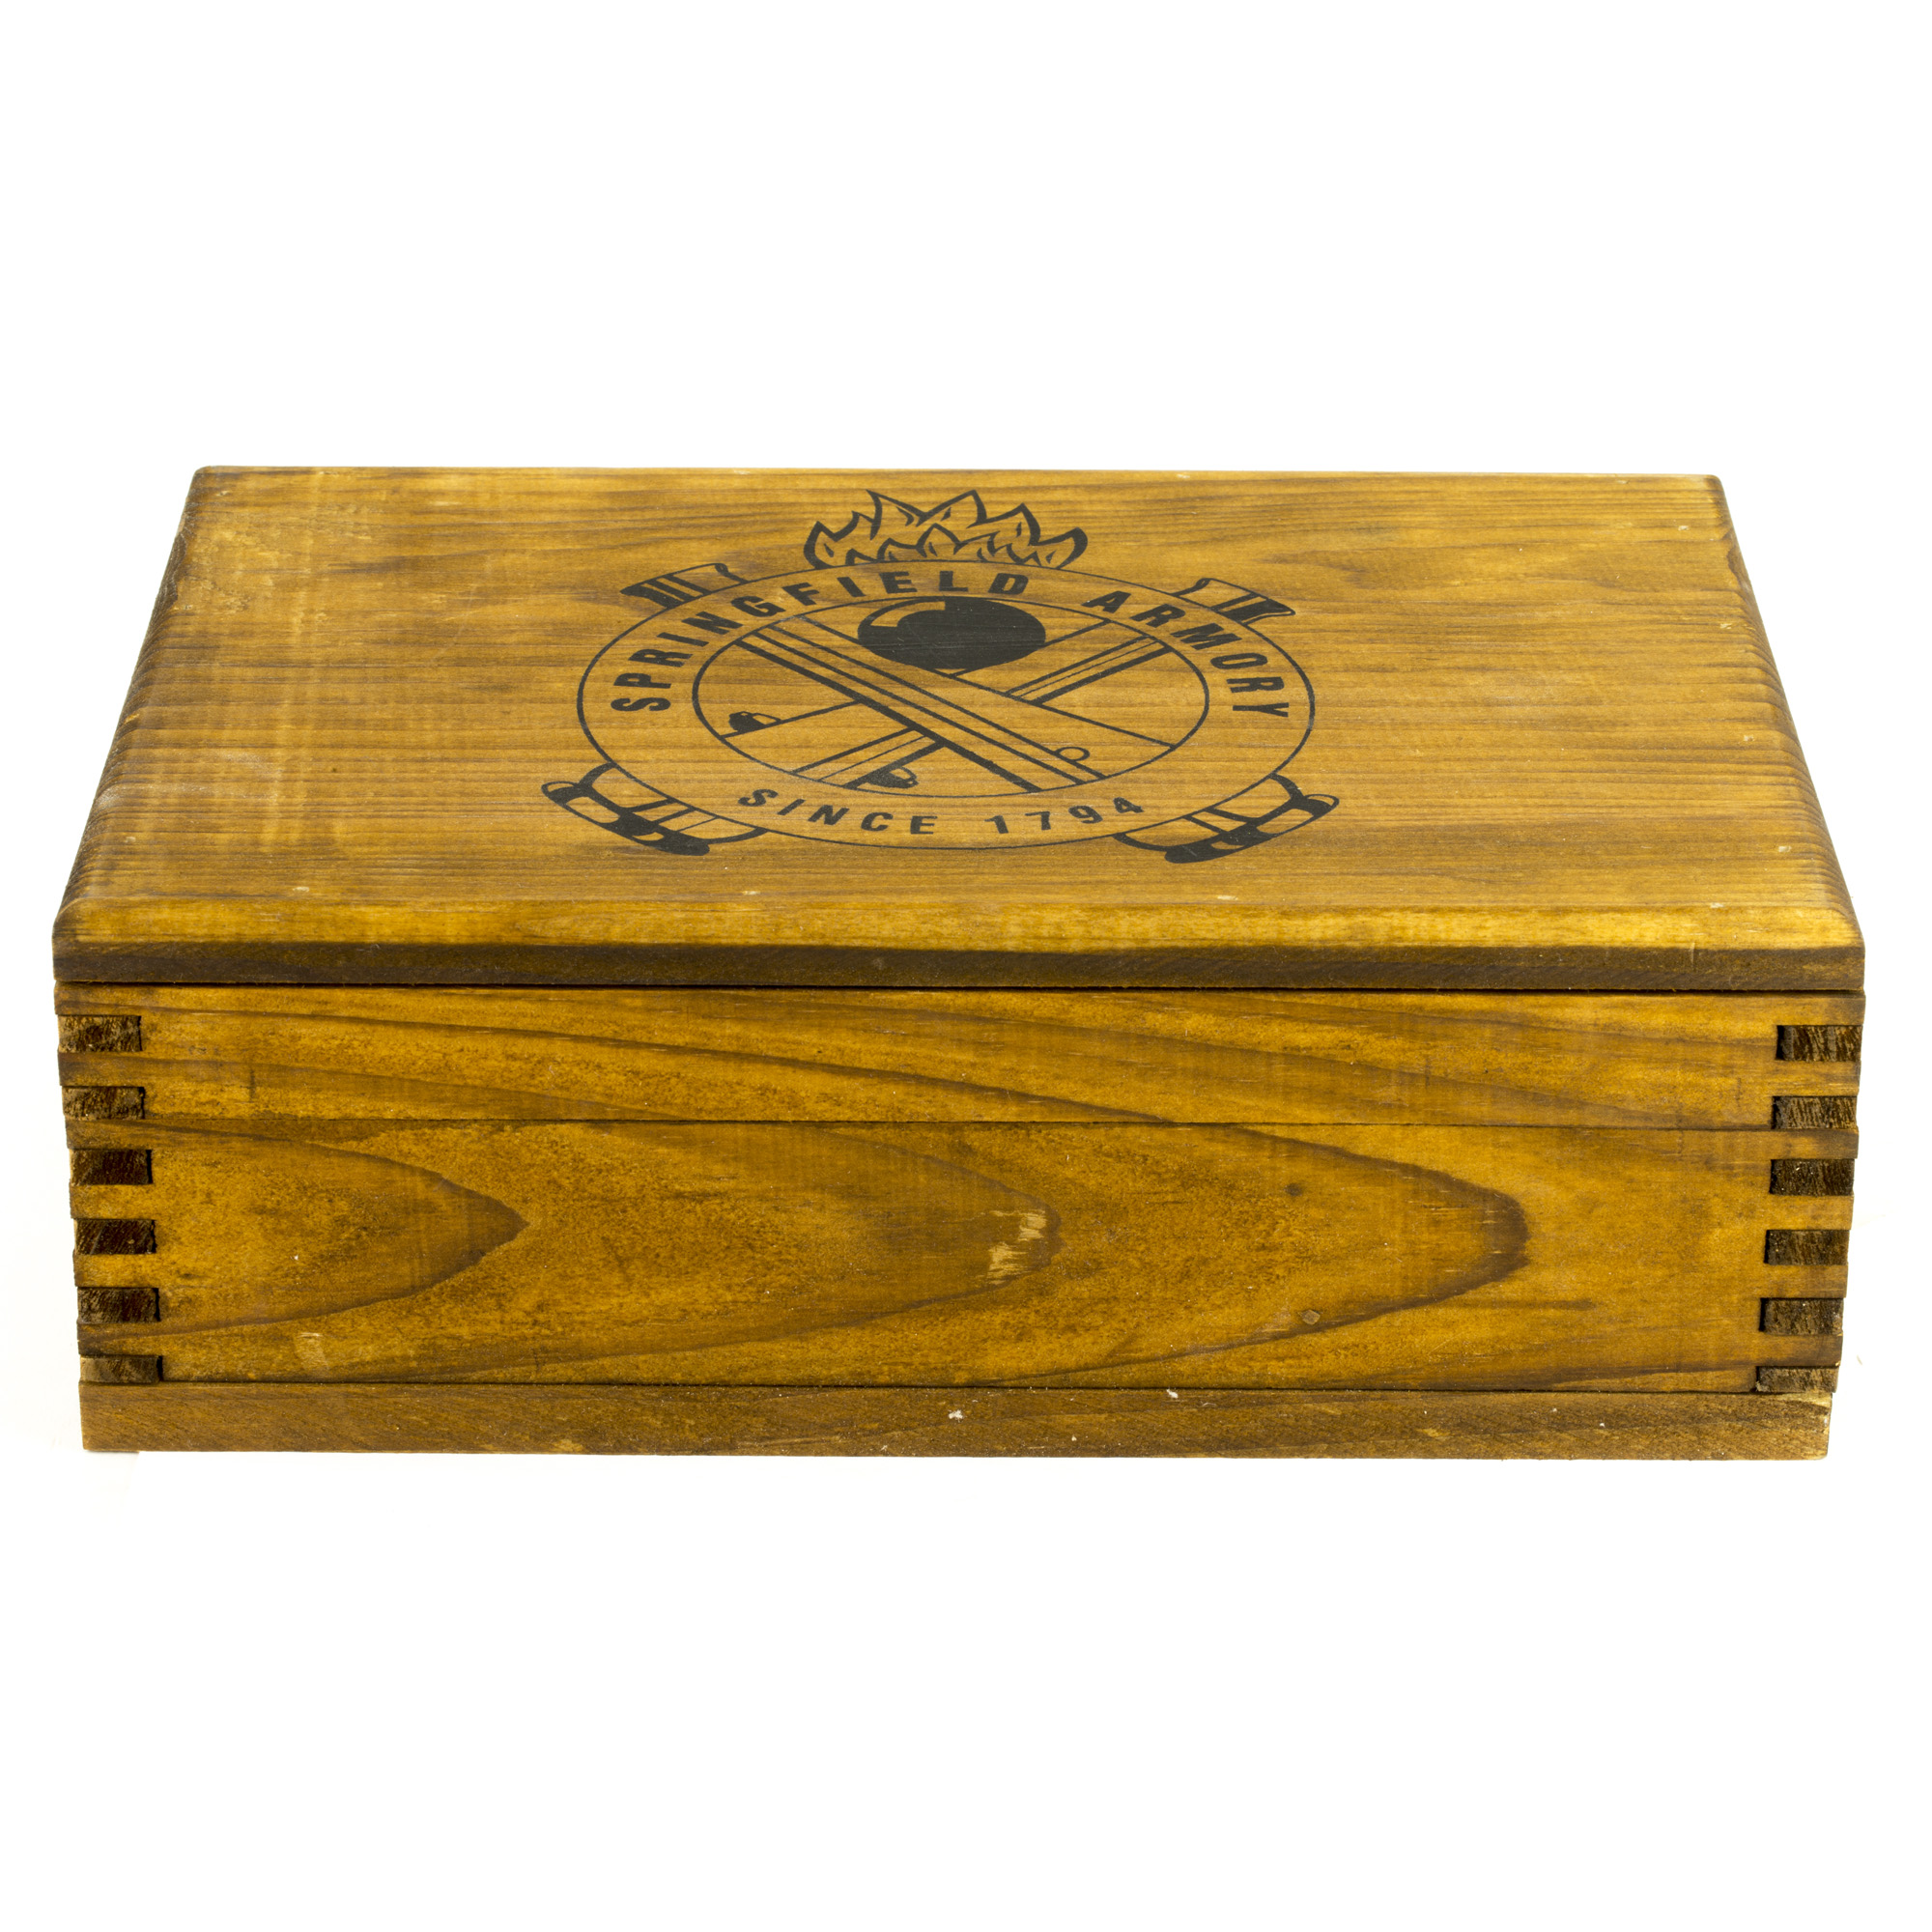 Display your Springfield 1911-Al in this beautiful wooden presentation and storage box. A handsome lined wooden box is perfect for showing off your Springfield Armory 1911 with class. It holds one 1911 style pistol and a spare magazine.